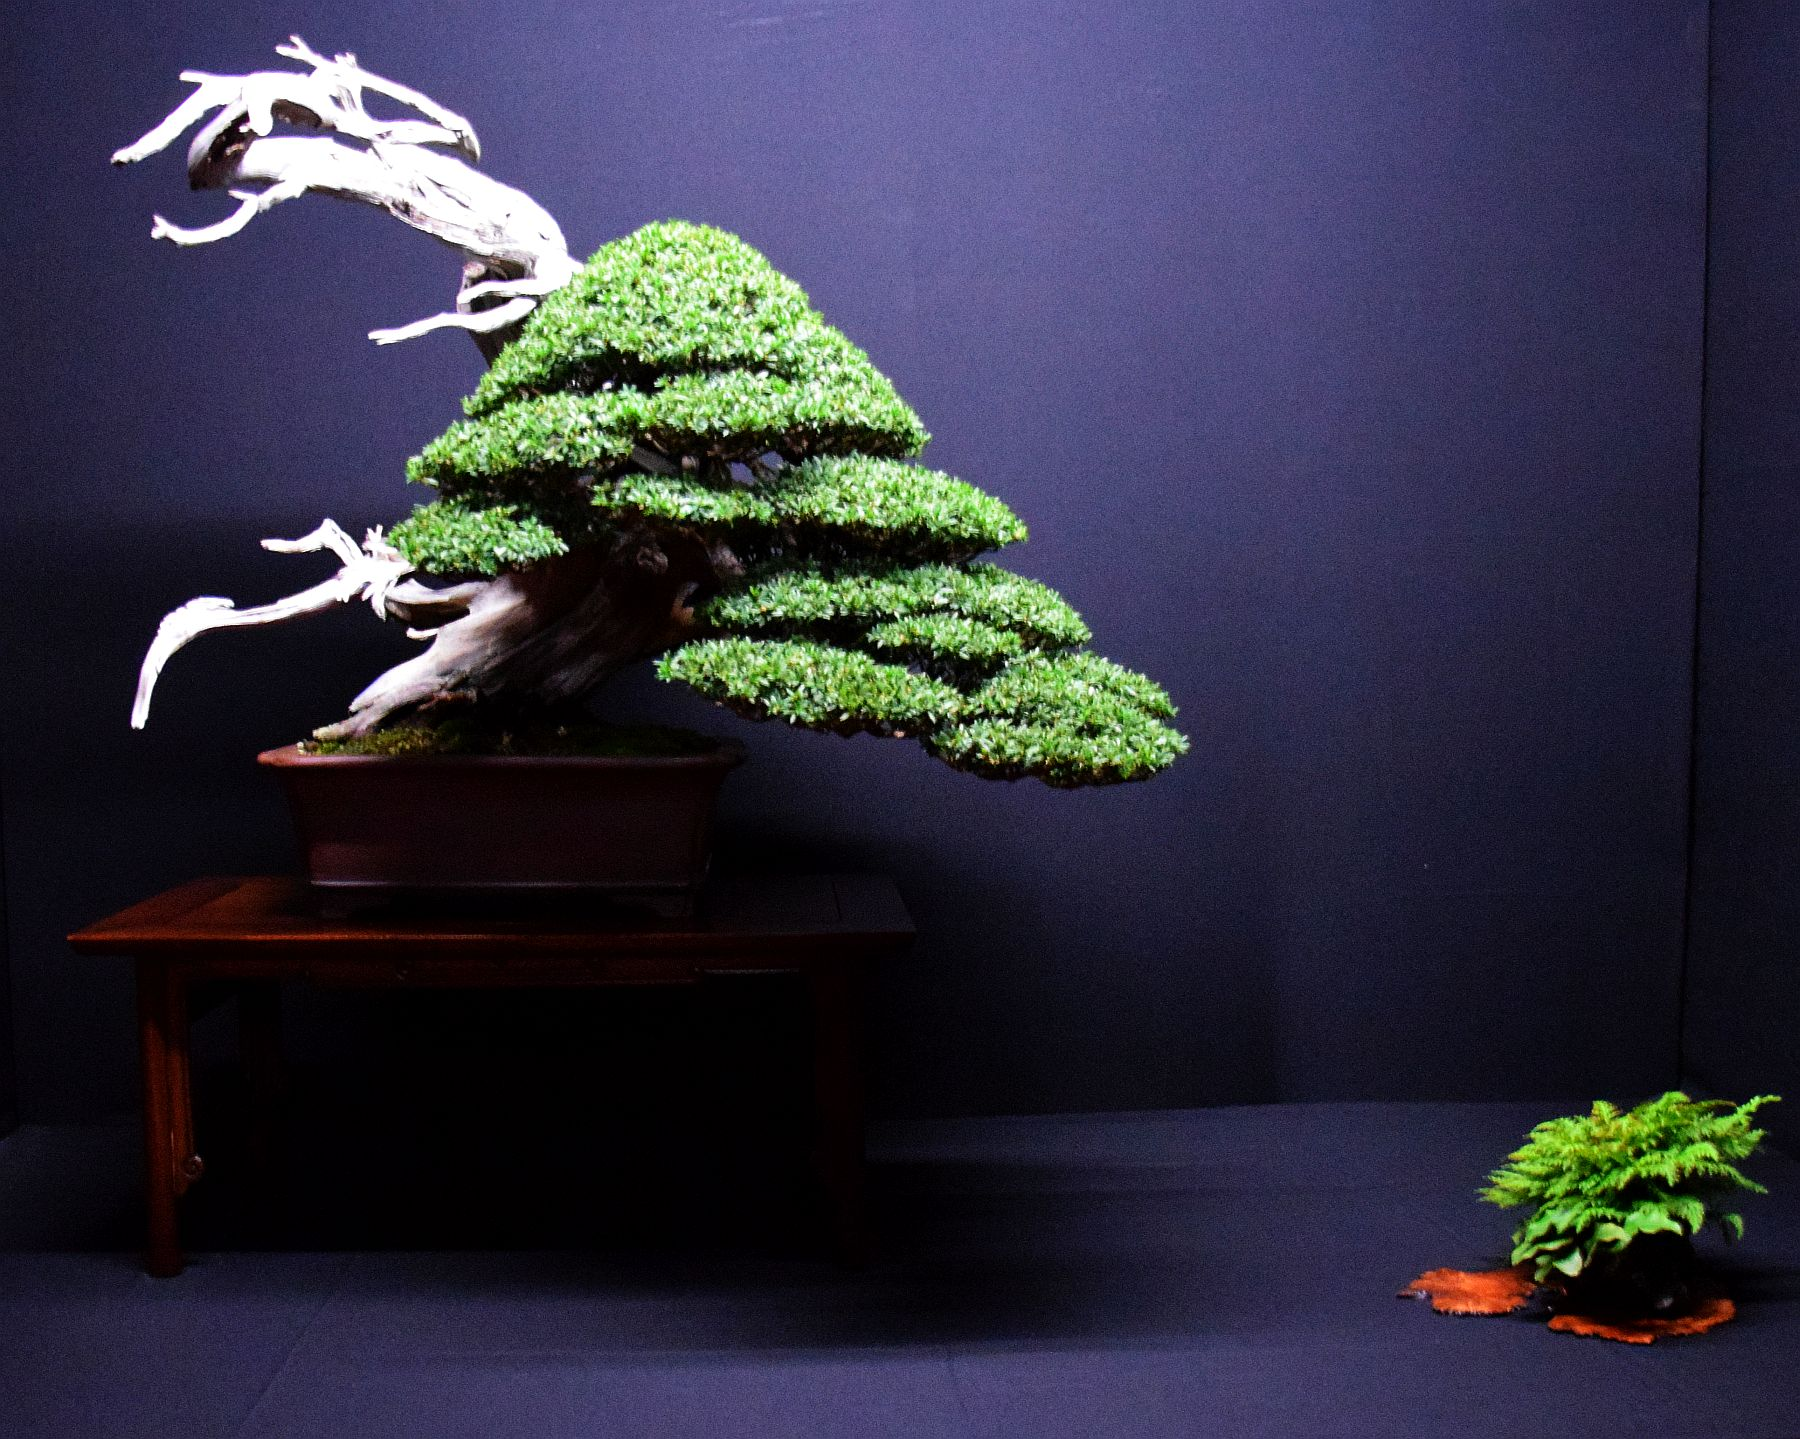 bonsai-museum-luis-vallejo-026